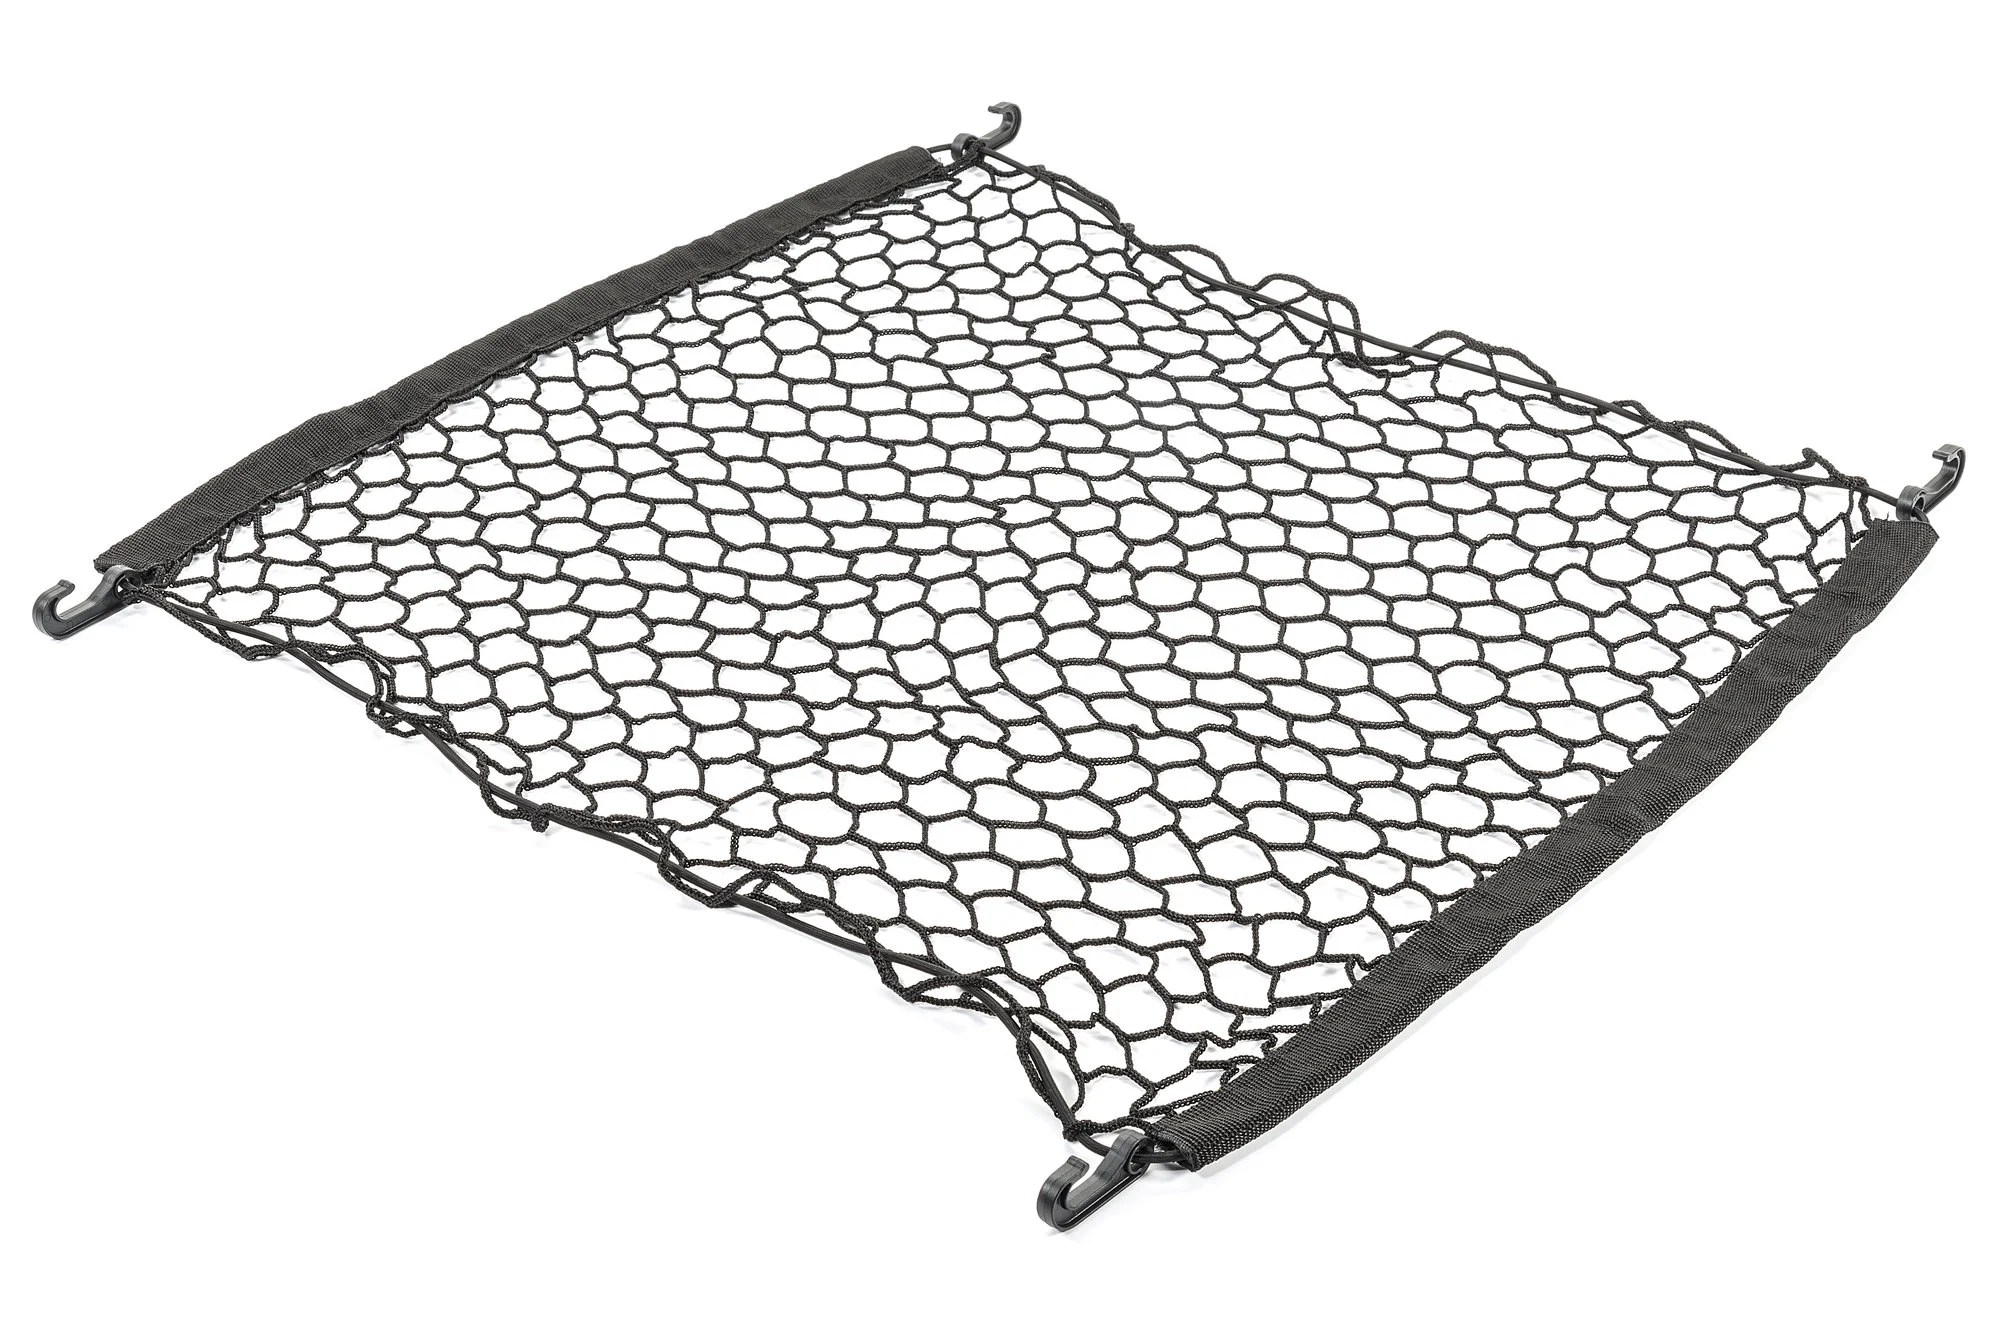 Mopar Cargo Net For 18 19 Jeep Wrangler Unlimited